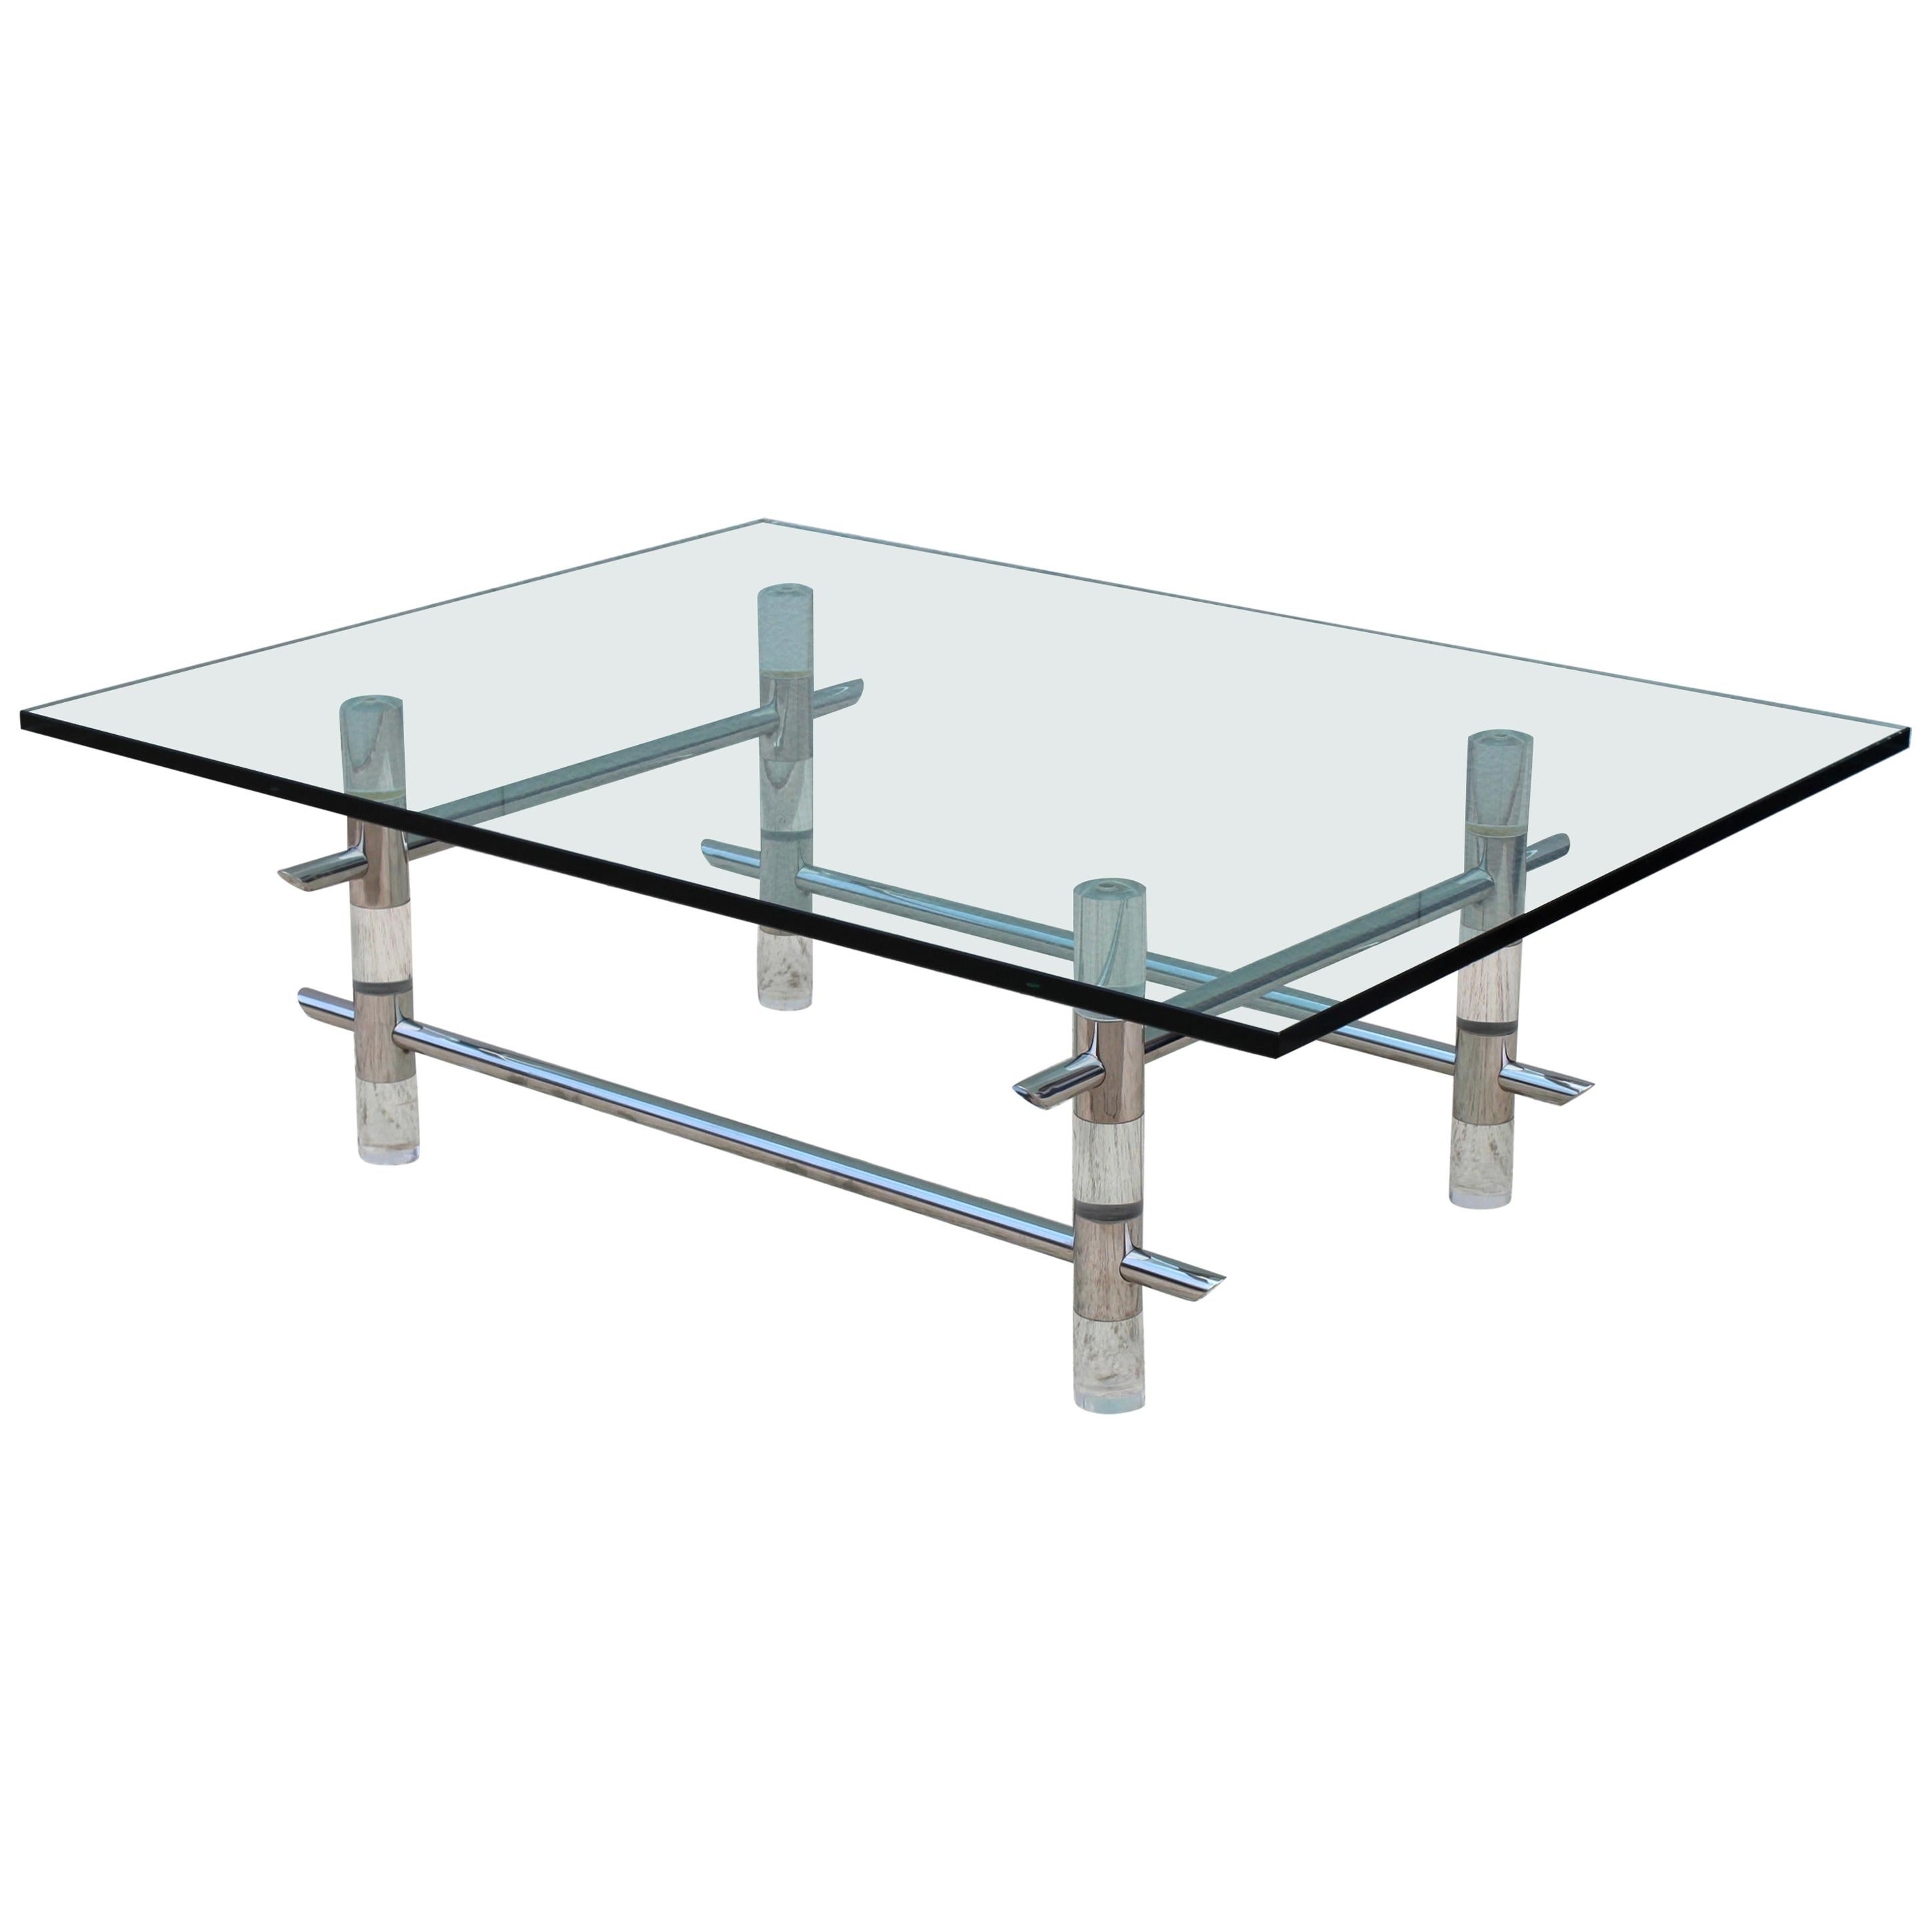 1970s Les Prismatiques Lucite and Chrome Coffee Table